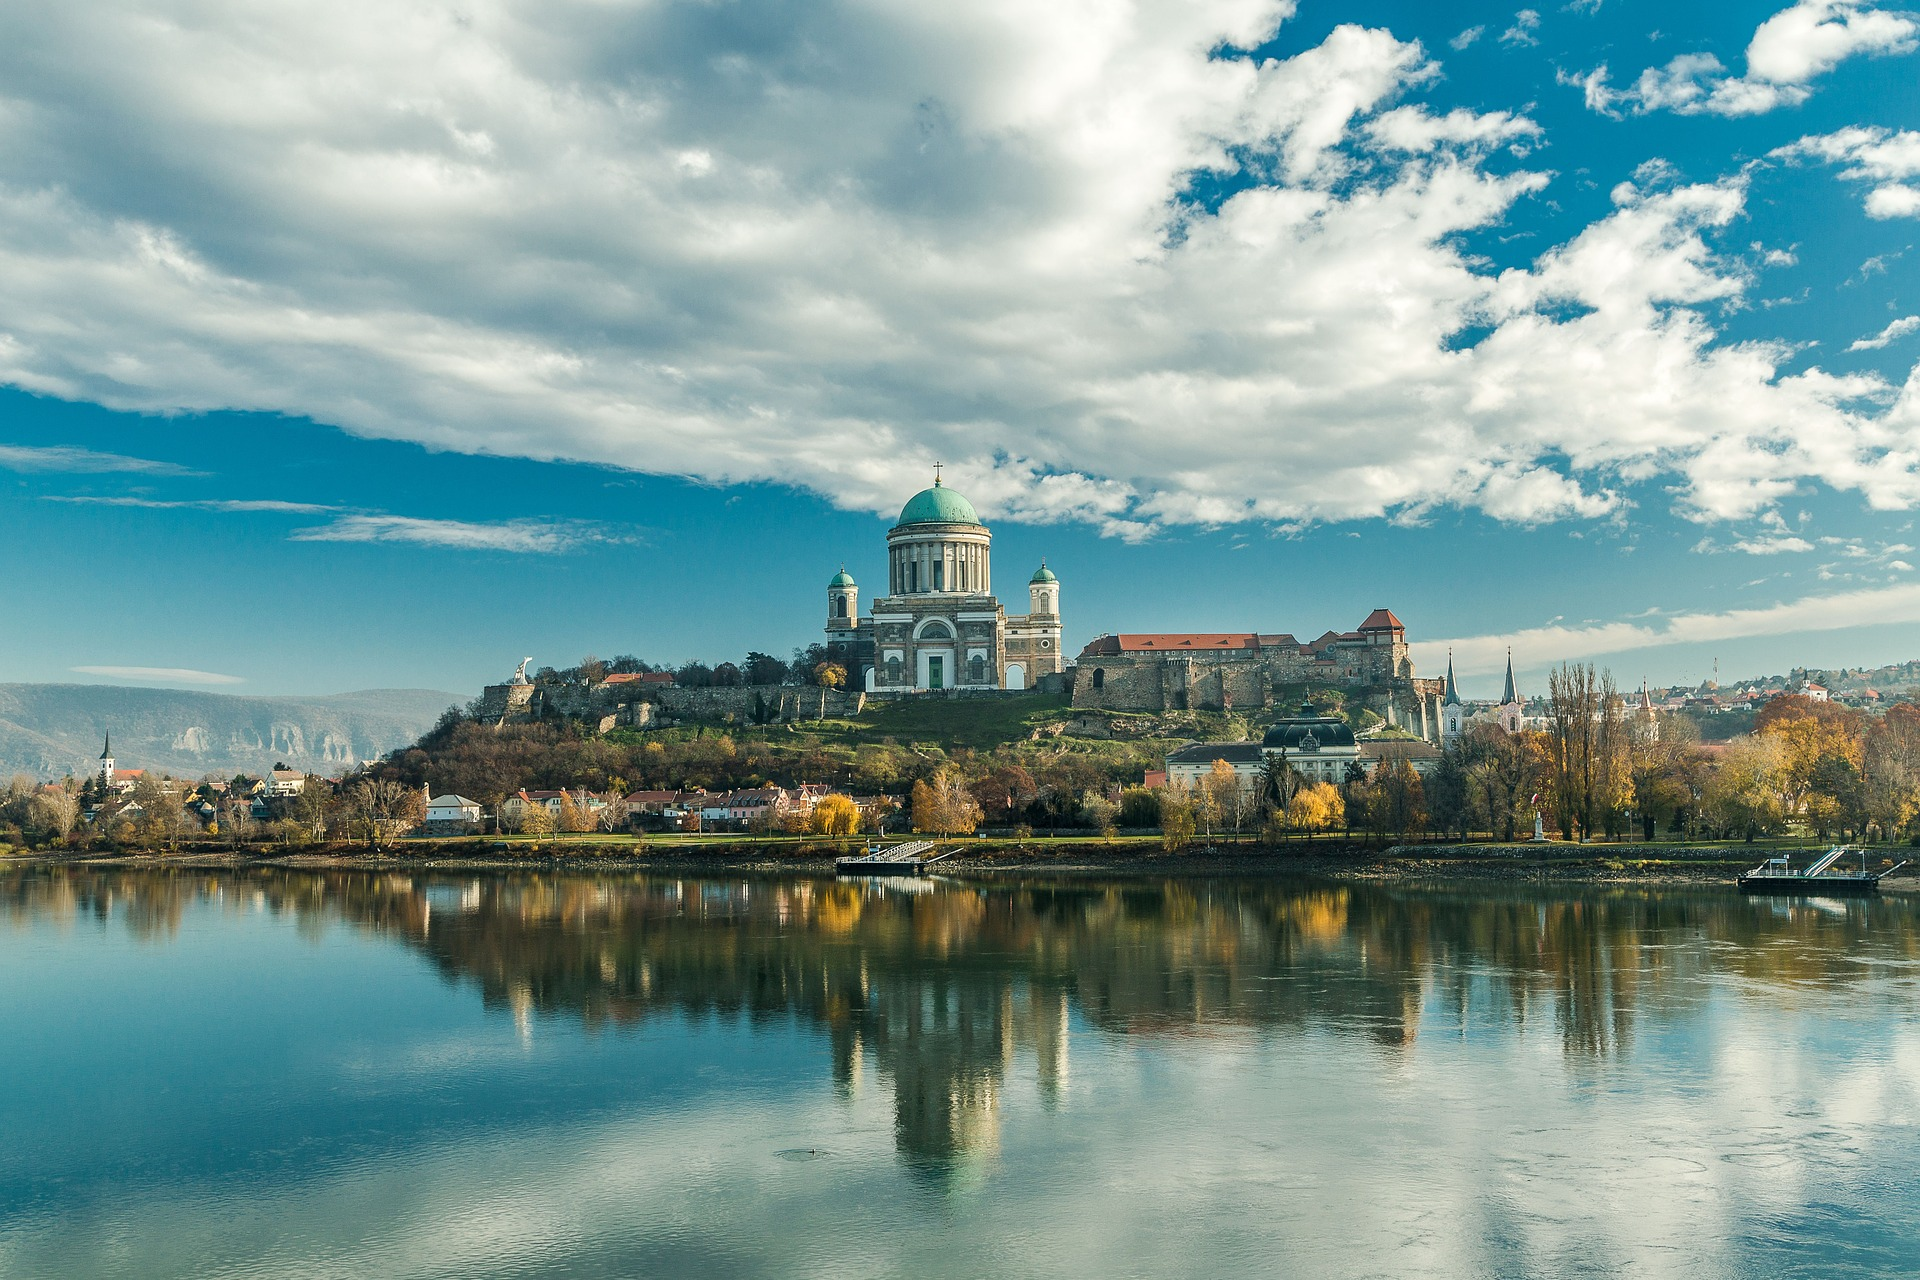 Esztergom basilica in Hungary is the best sight in this private transfer